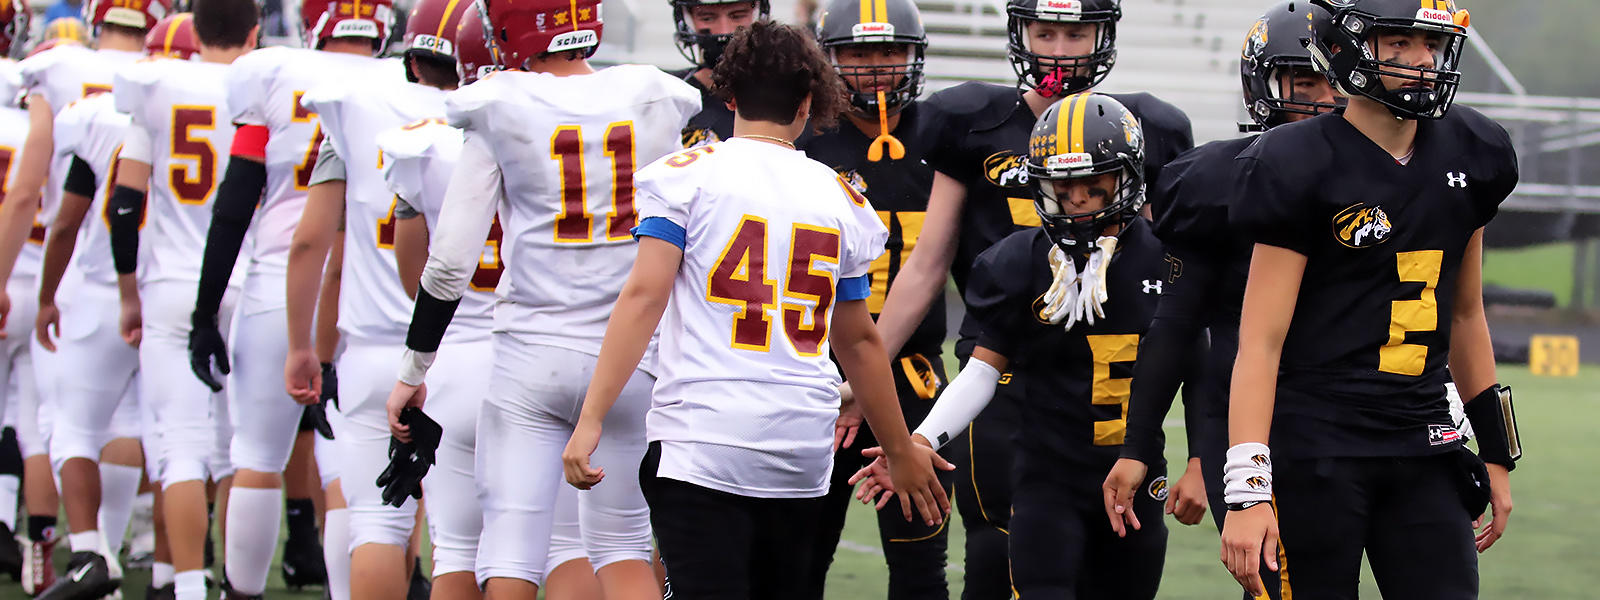 Elmwood Park and Westmont players display good sportsmanship after the Tigers' 13-0 Homecoming victory on Sept. 28.